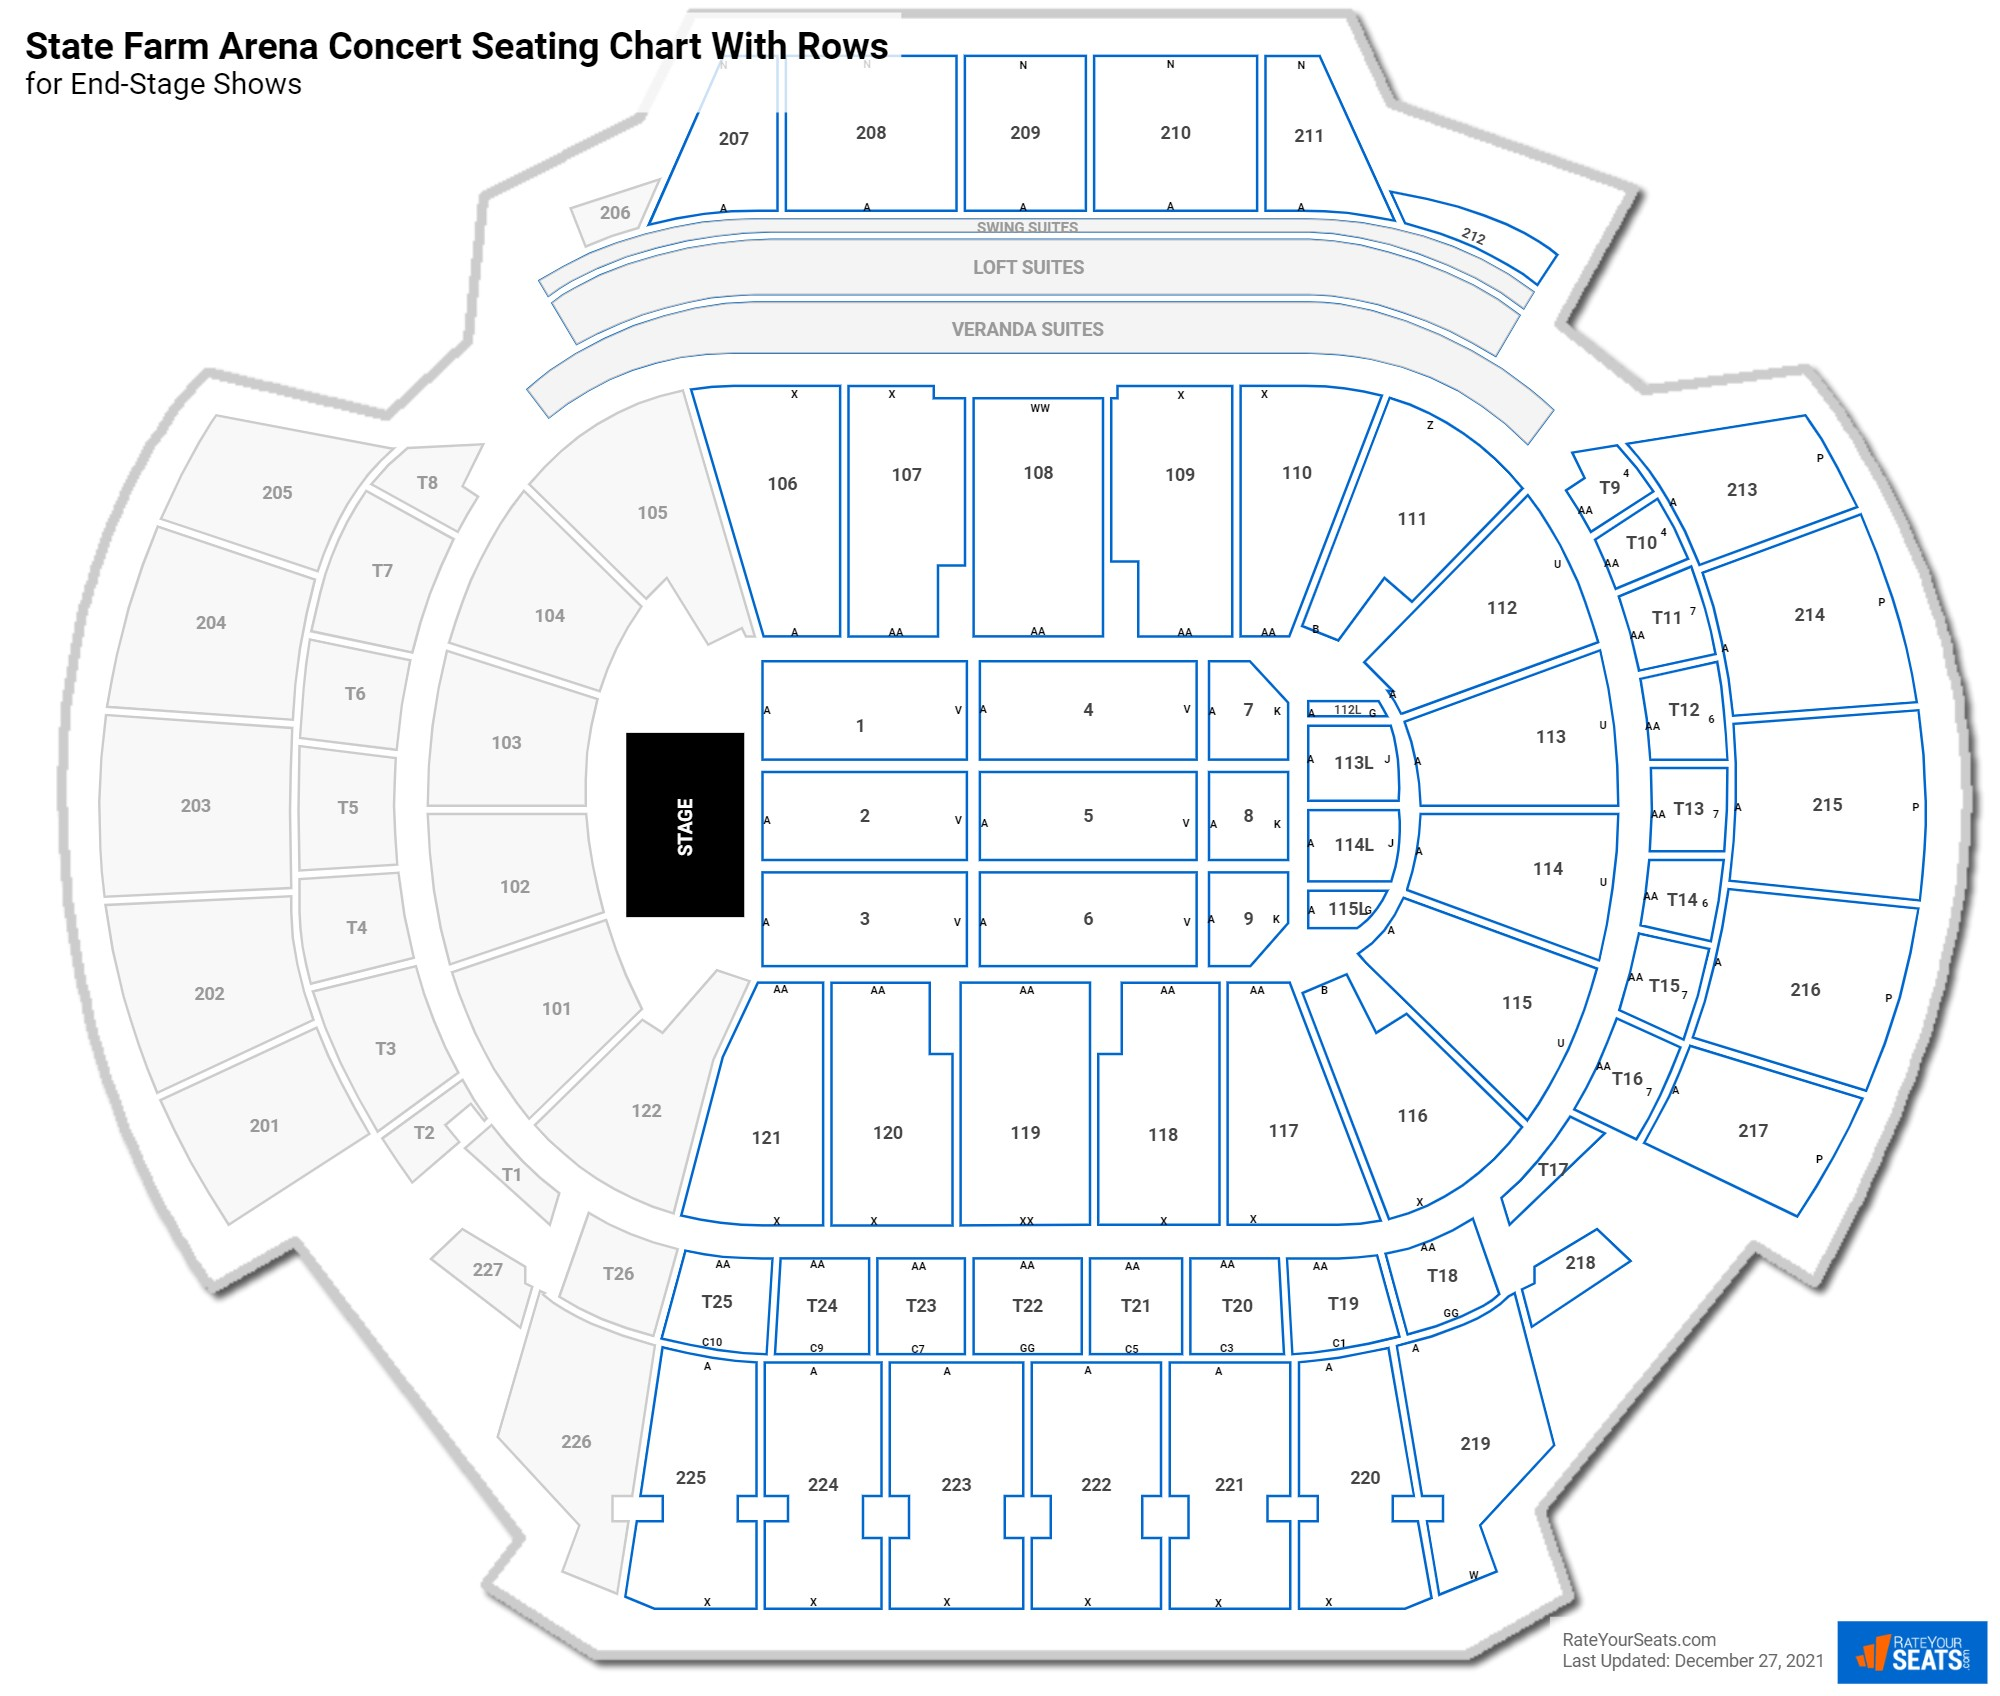 State Farm Arena seating chart with rows concert